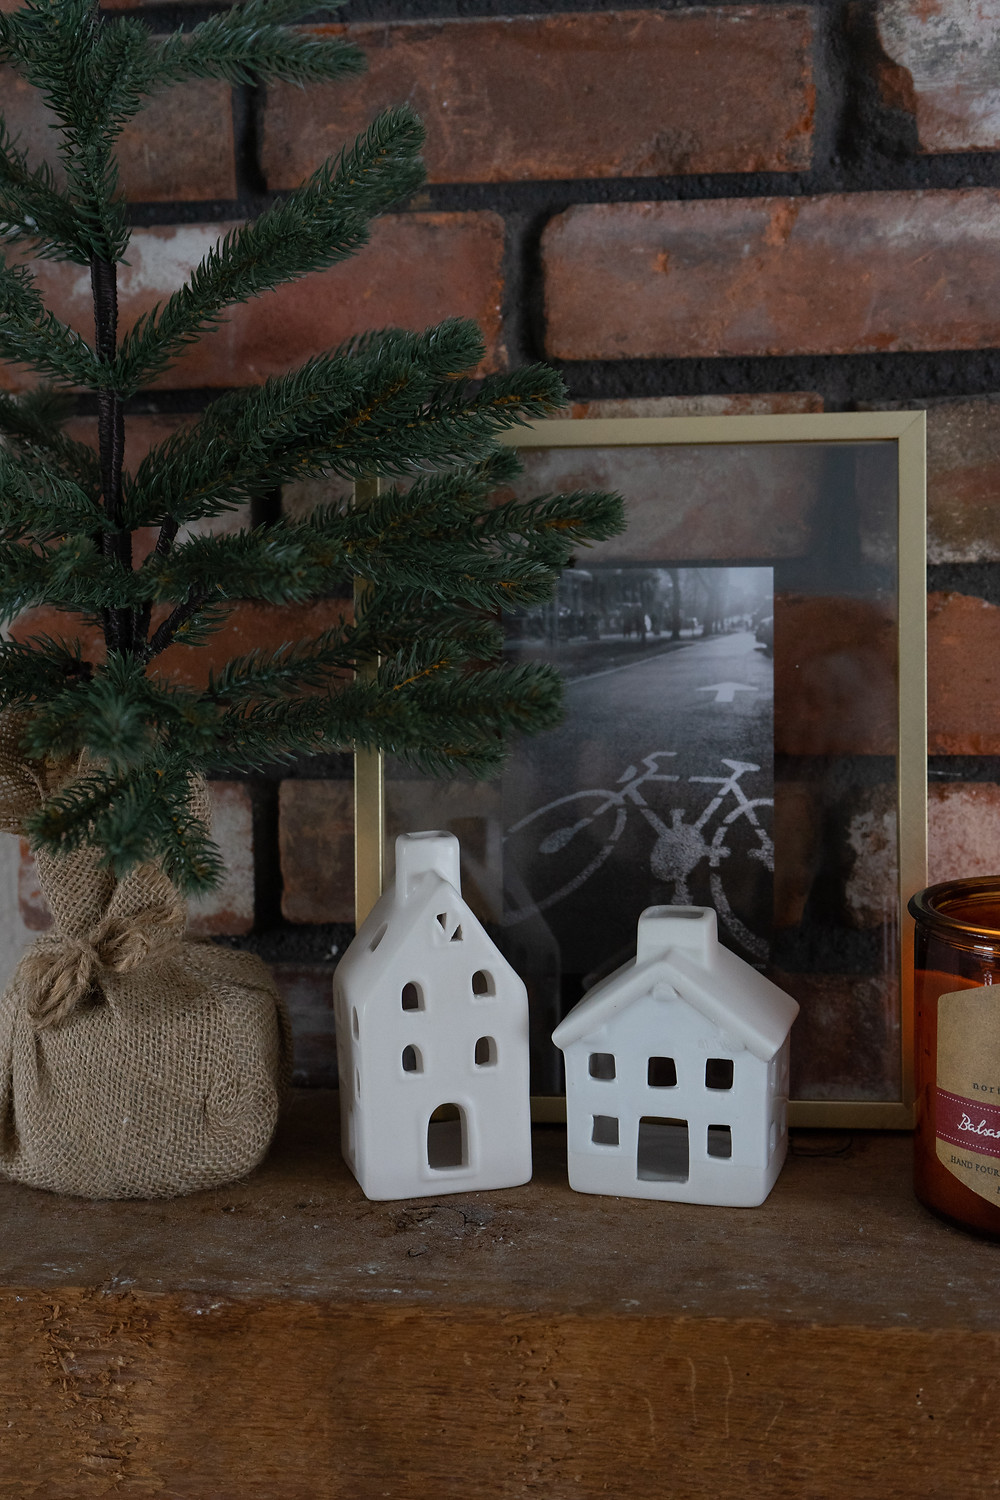 Faux tree in burlap next to two white ceramic homes with a gold picture frame behind. A glowing candle is on the right and the decor is sitting on a wooden mantel on a brick fireplace